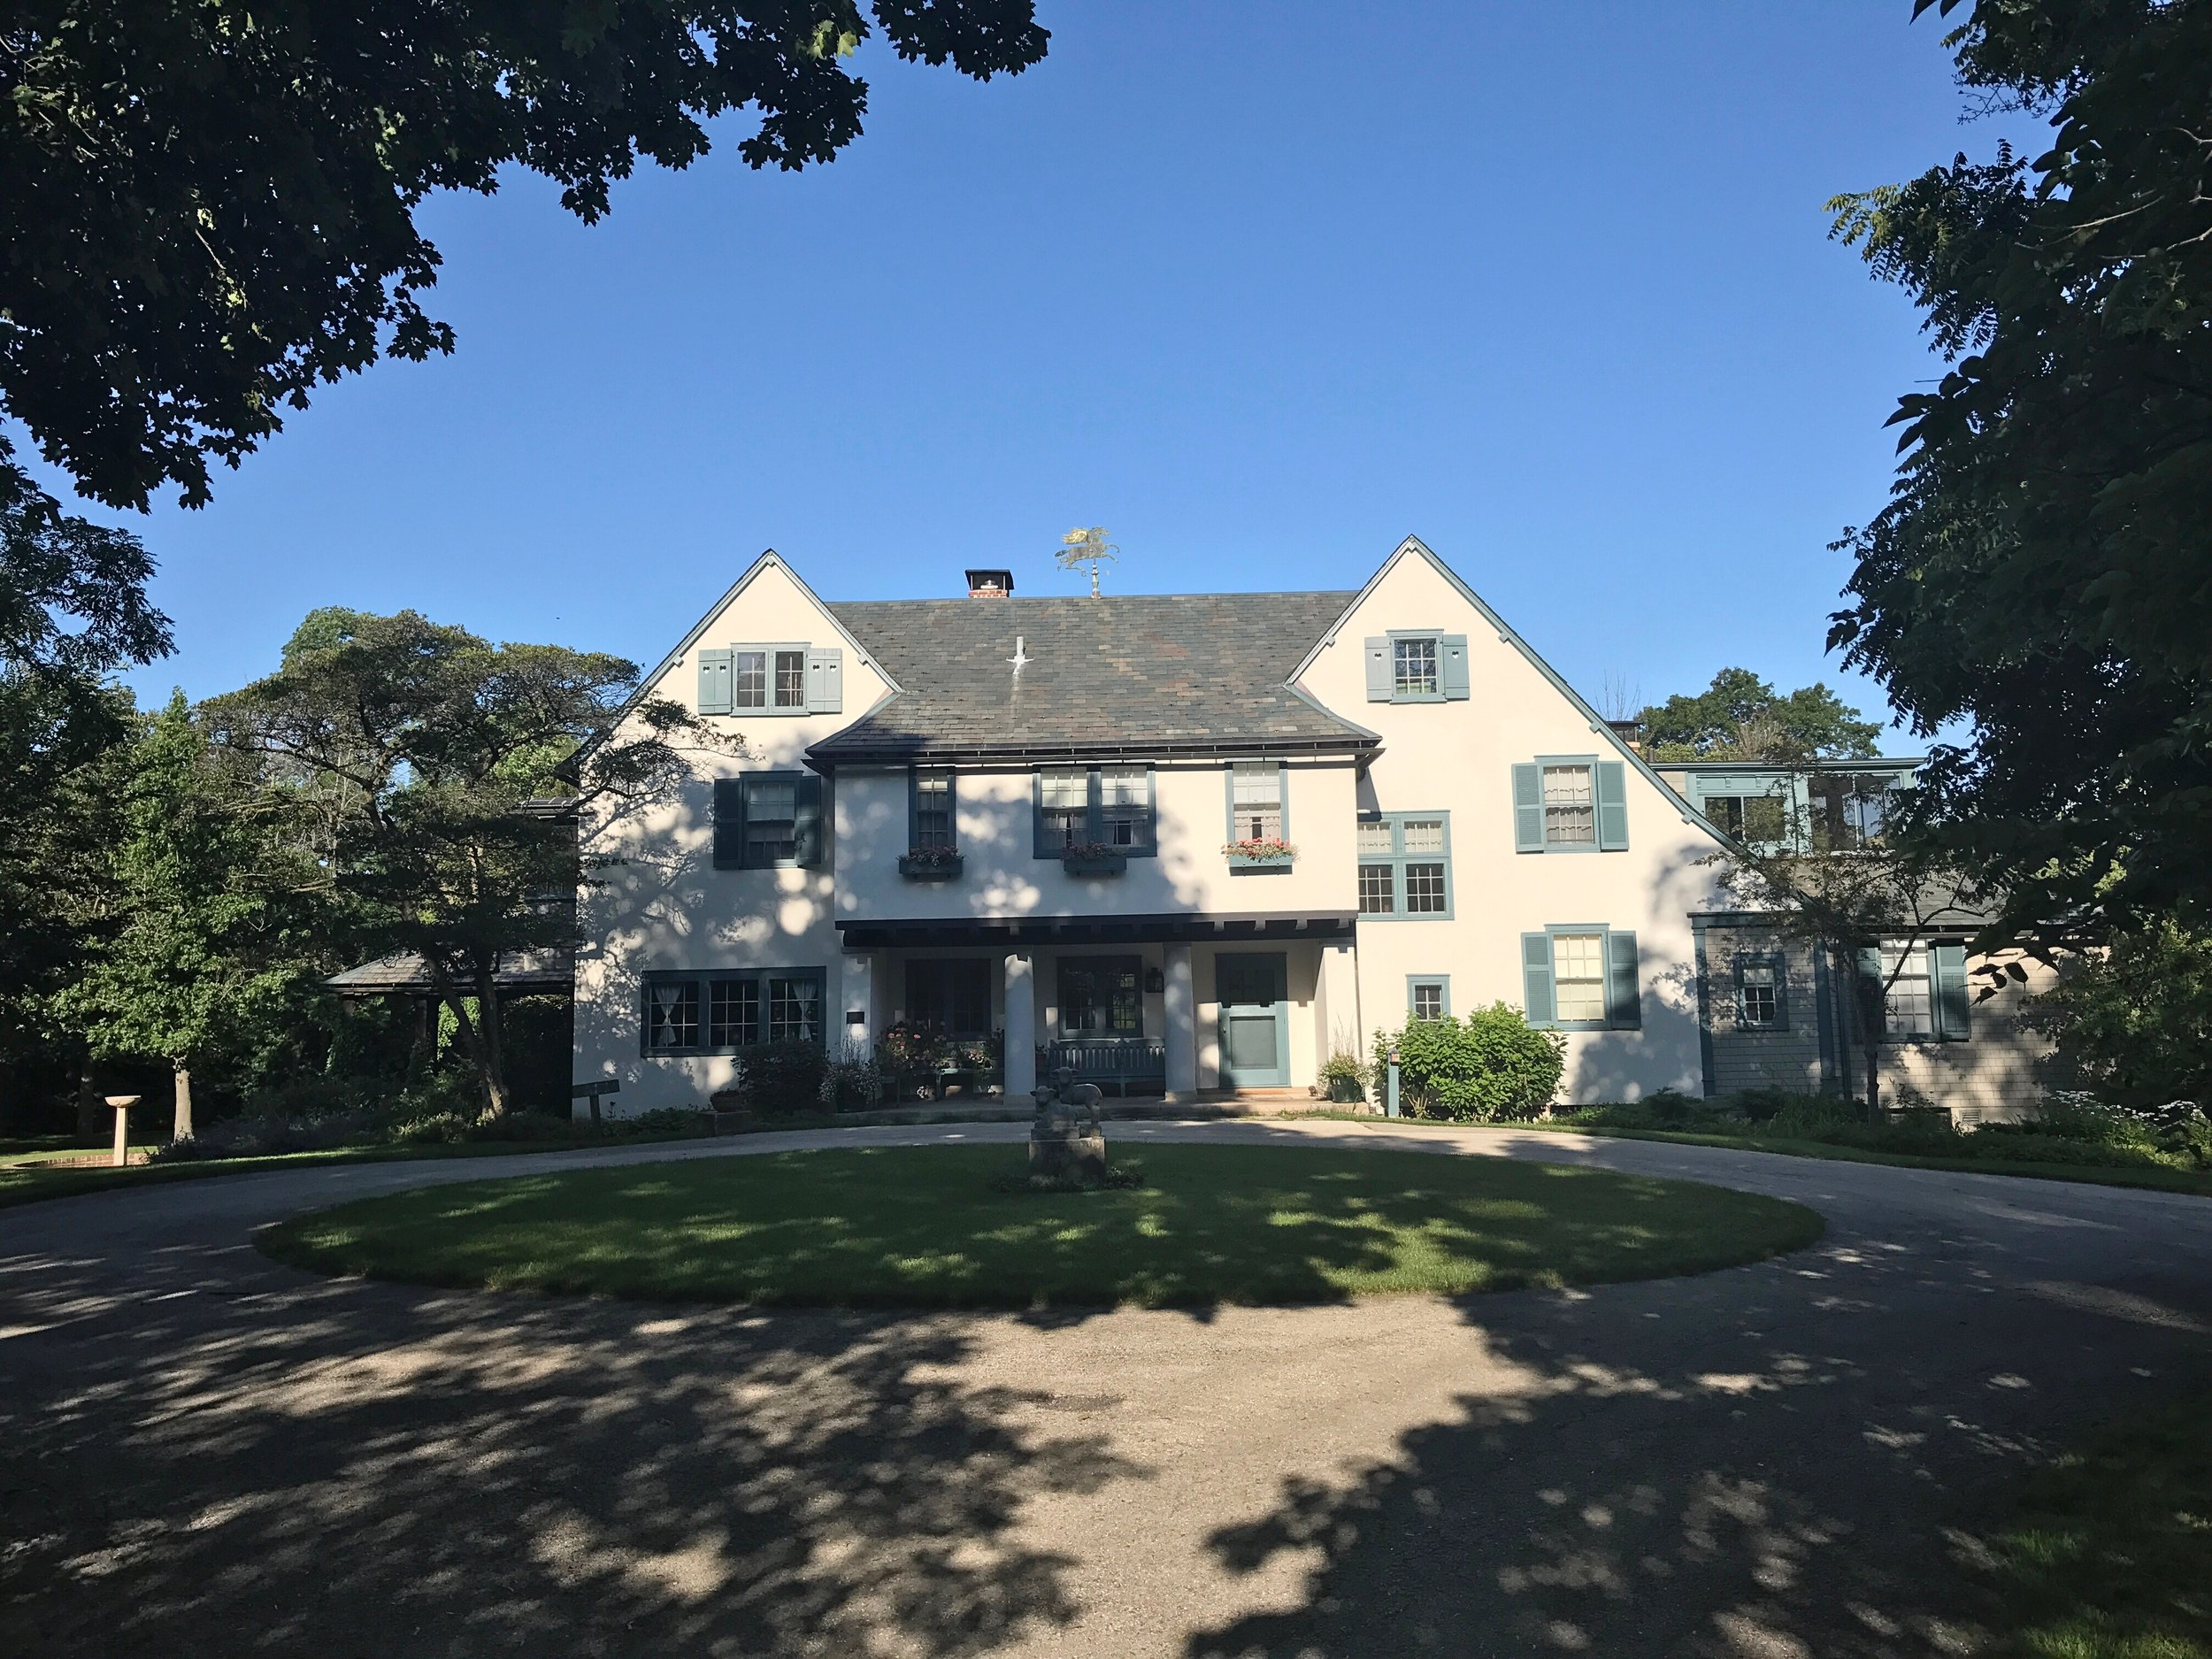 The main house at Ragdale. Originally the summer home of Howard Van Doren Shaw who is considered a leader of the American Arts and Crafts Movement.